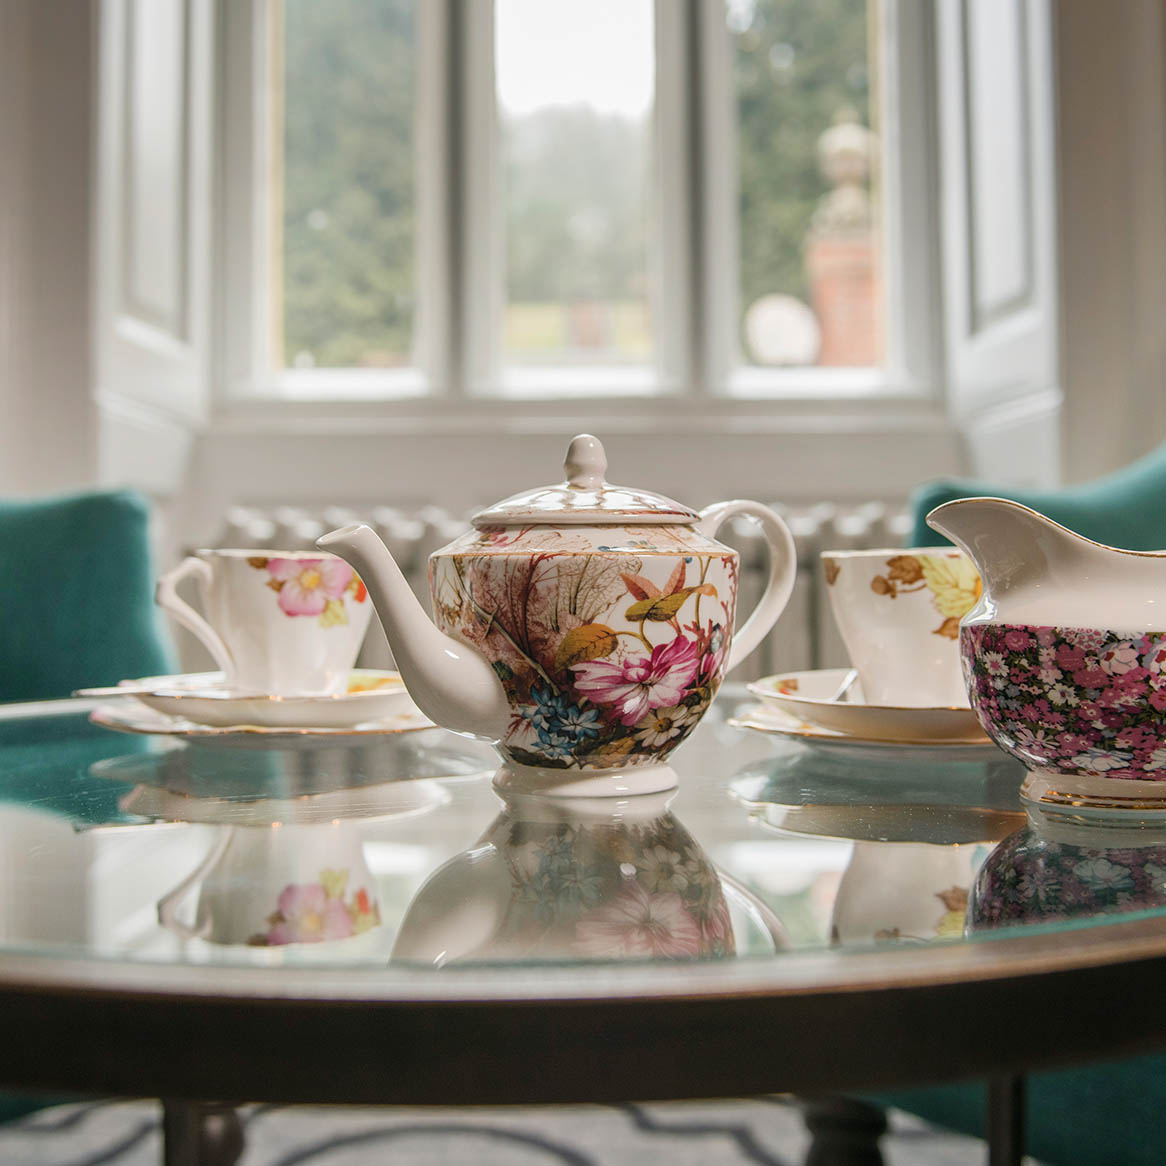 Afternoon tea celebrating an occasion at Wotton House